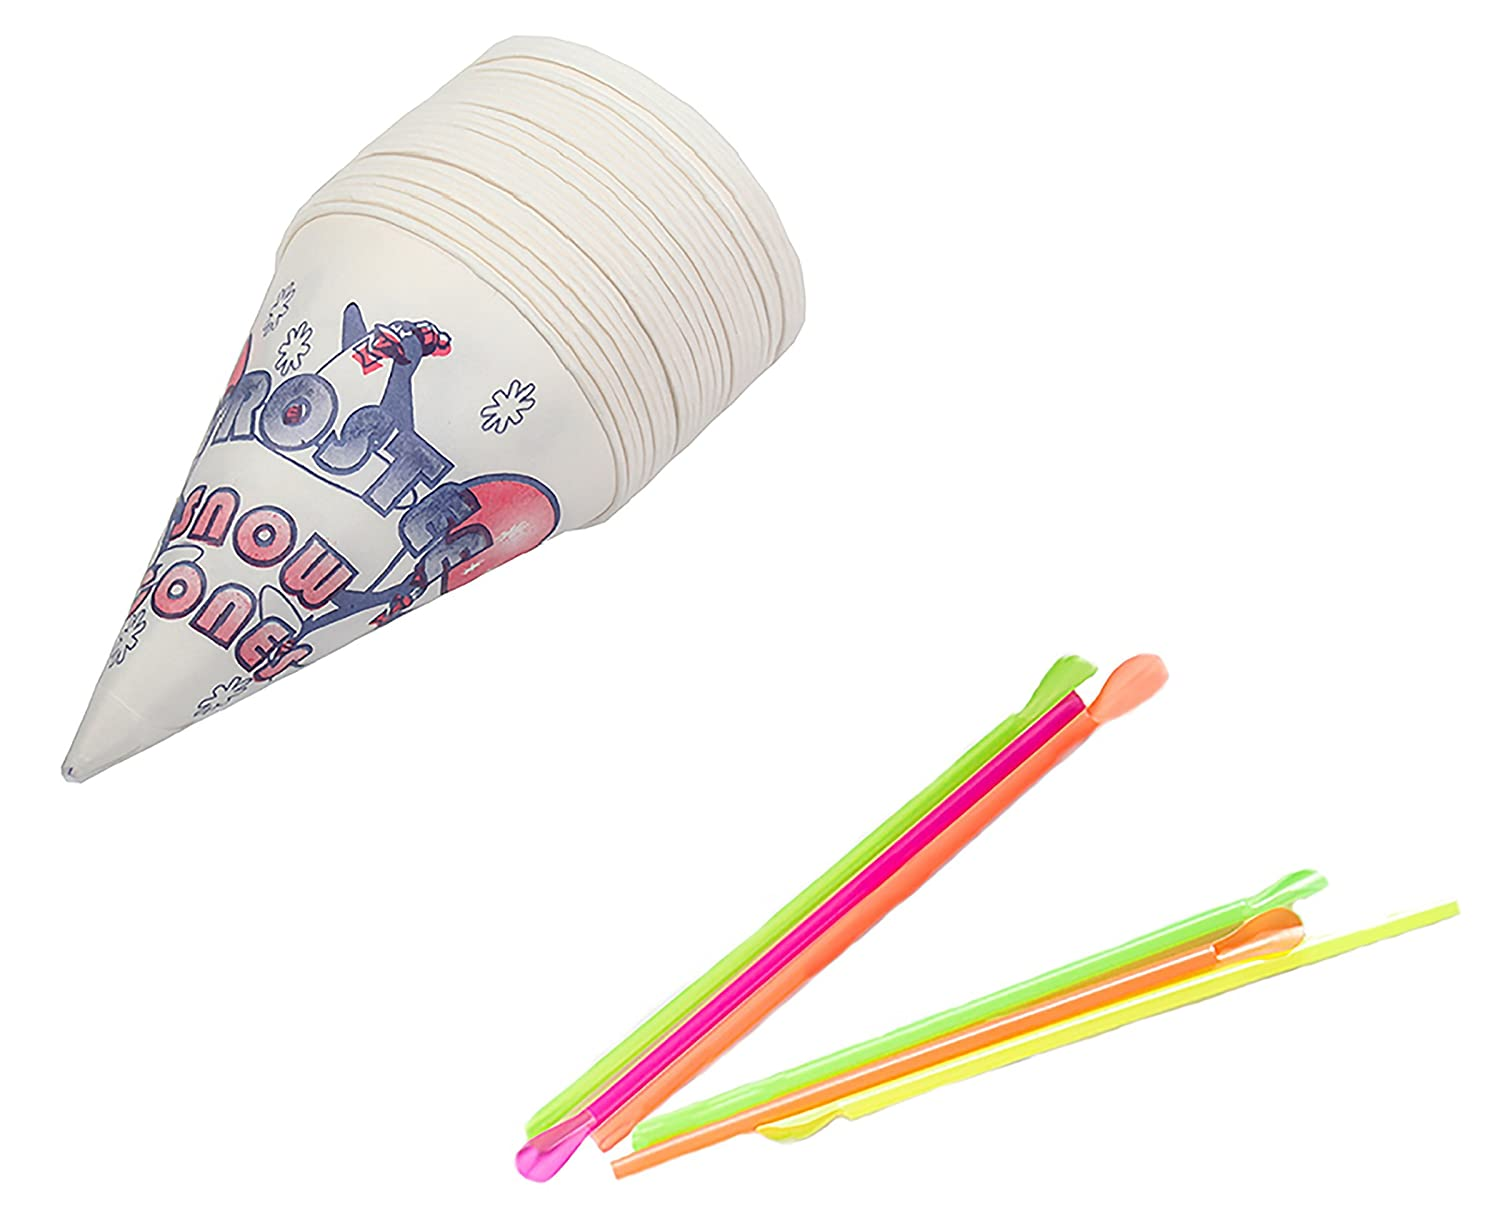 Perfect Stix Snow ConeStraws 100 Snow Cone Cups and Assorted Neon Straws 100 Count of Each Pack of